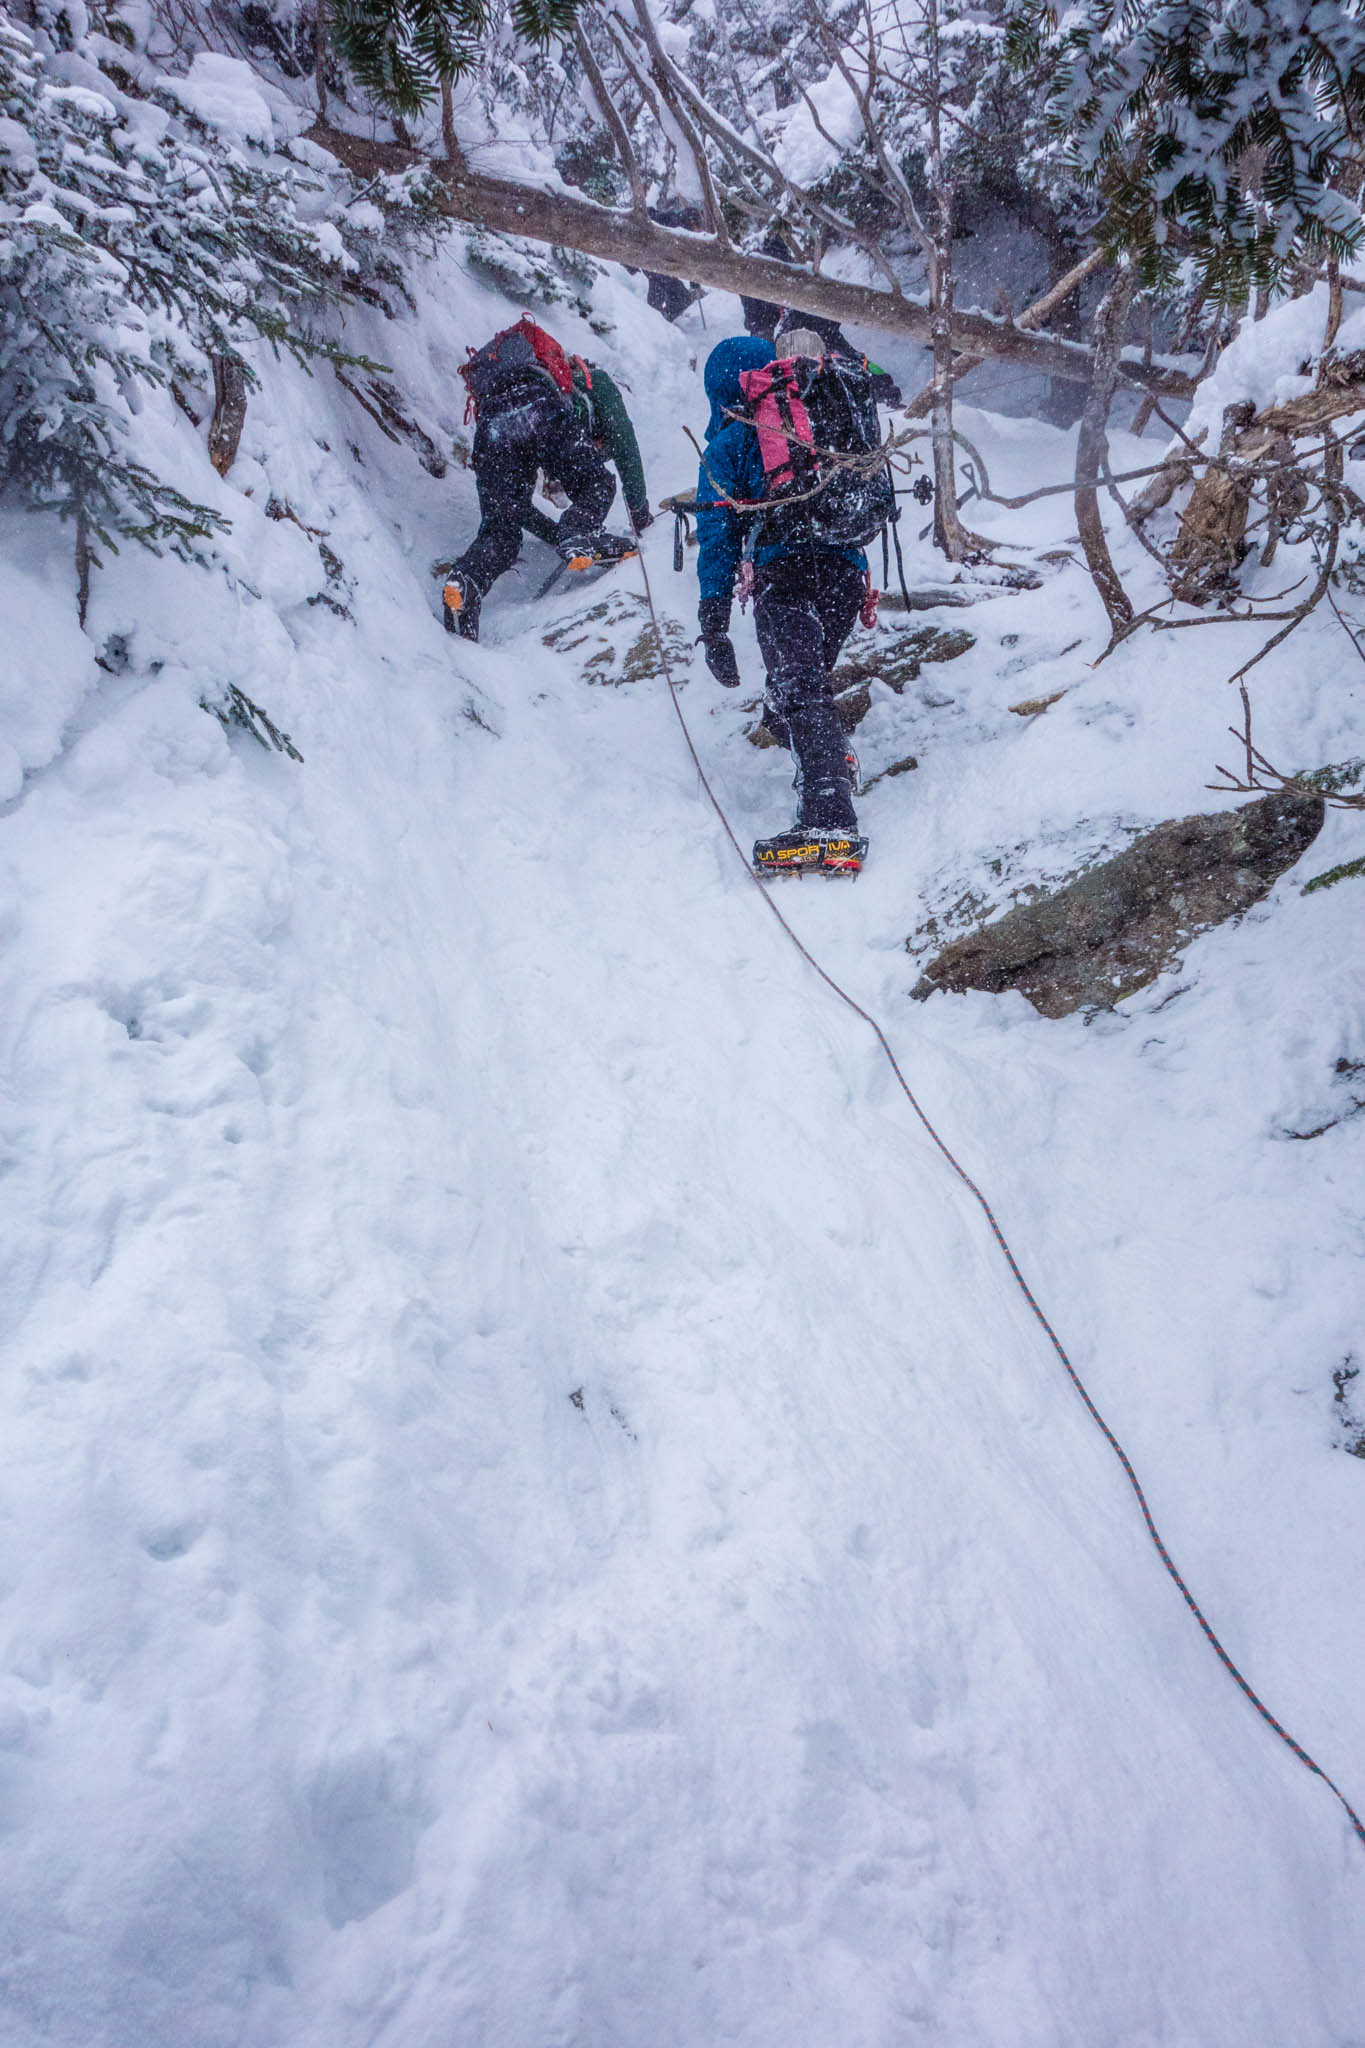 Descending the steepest section